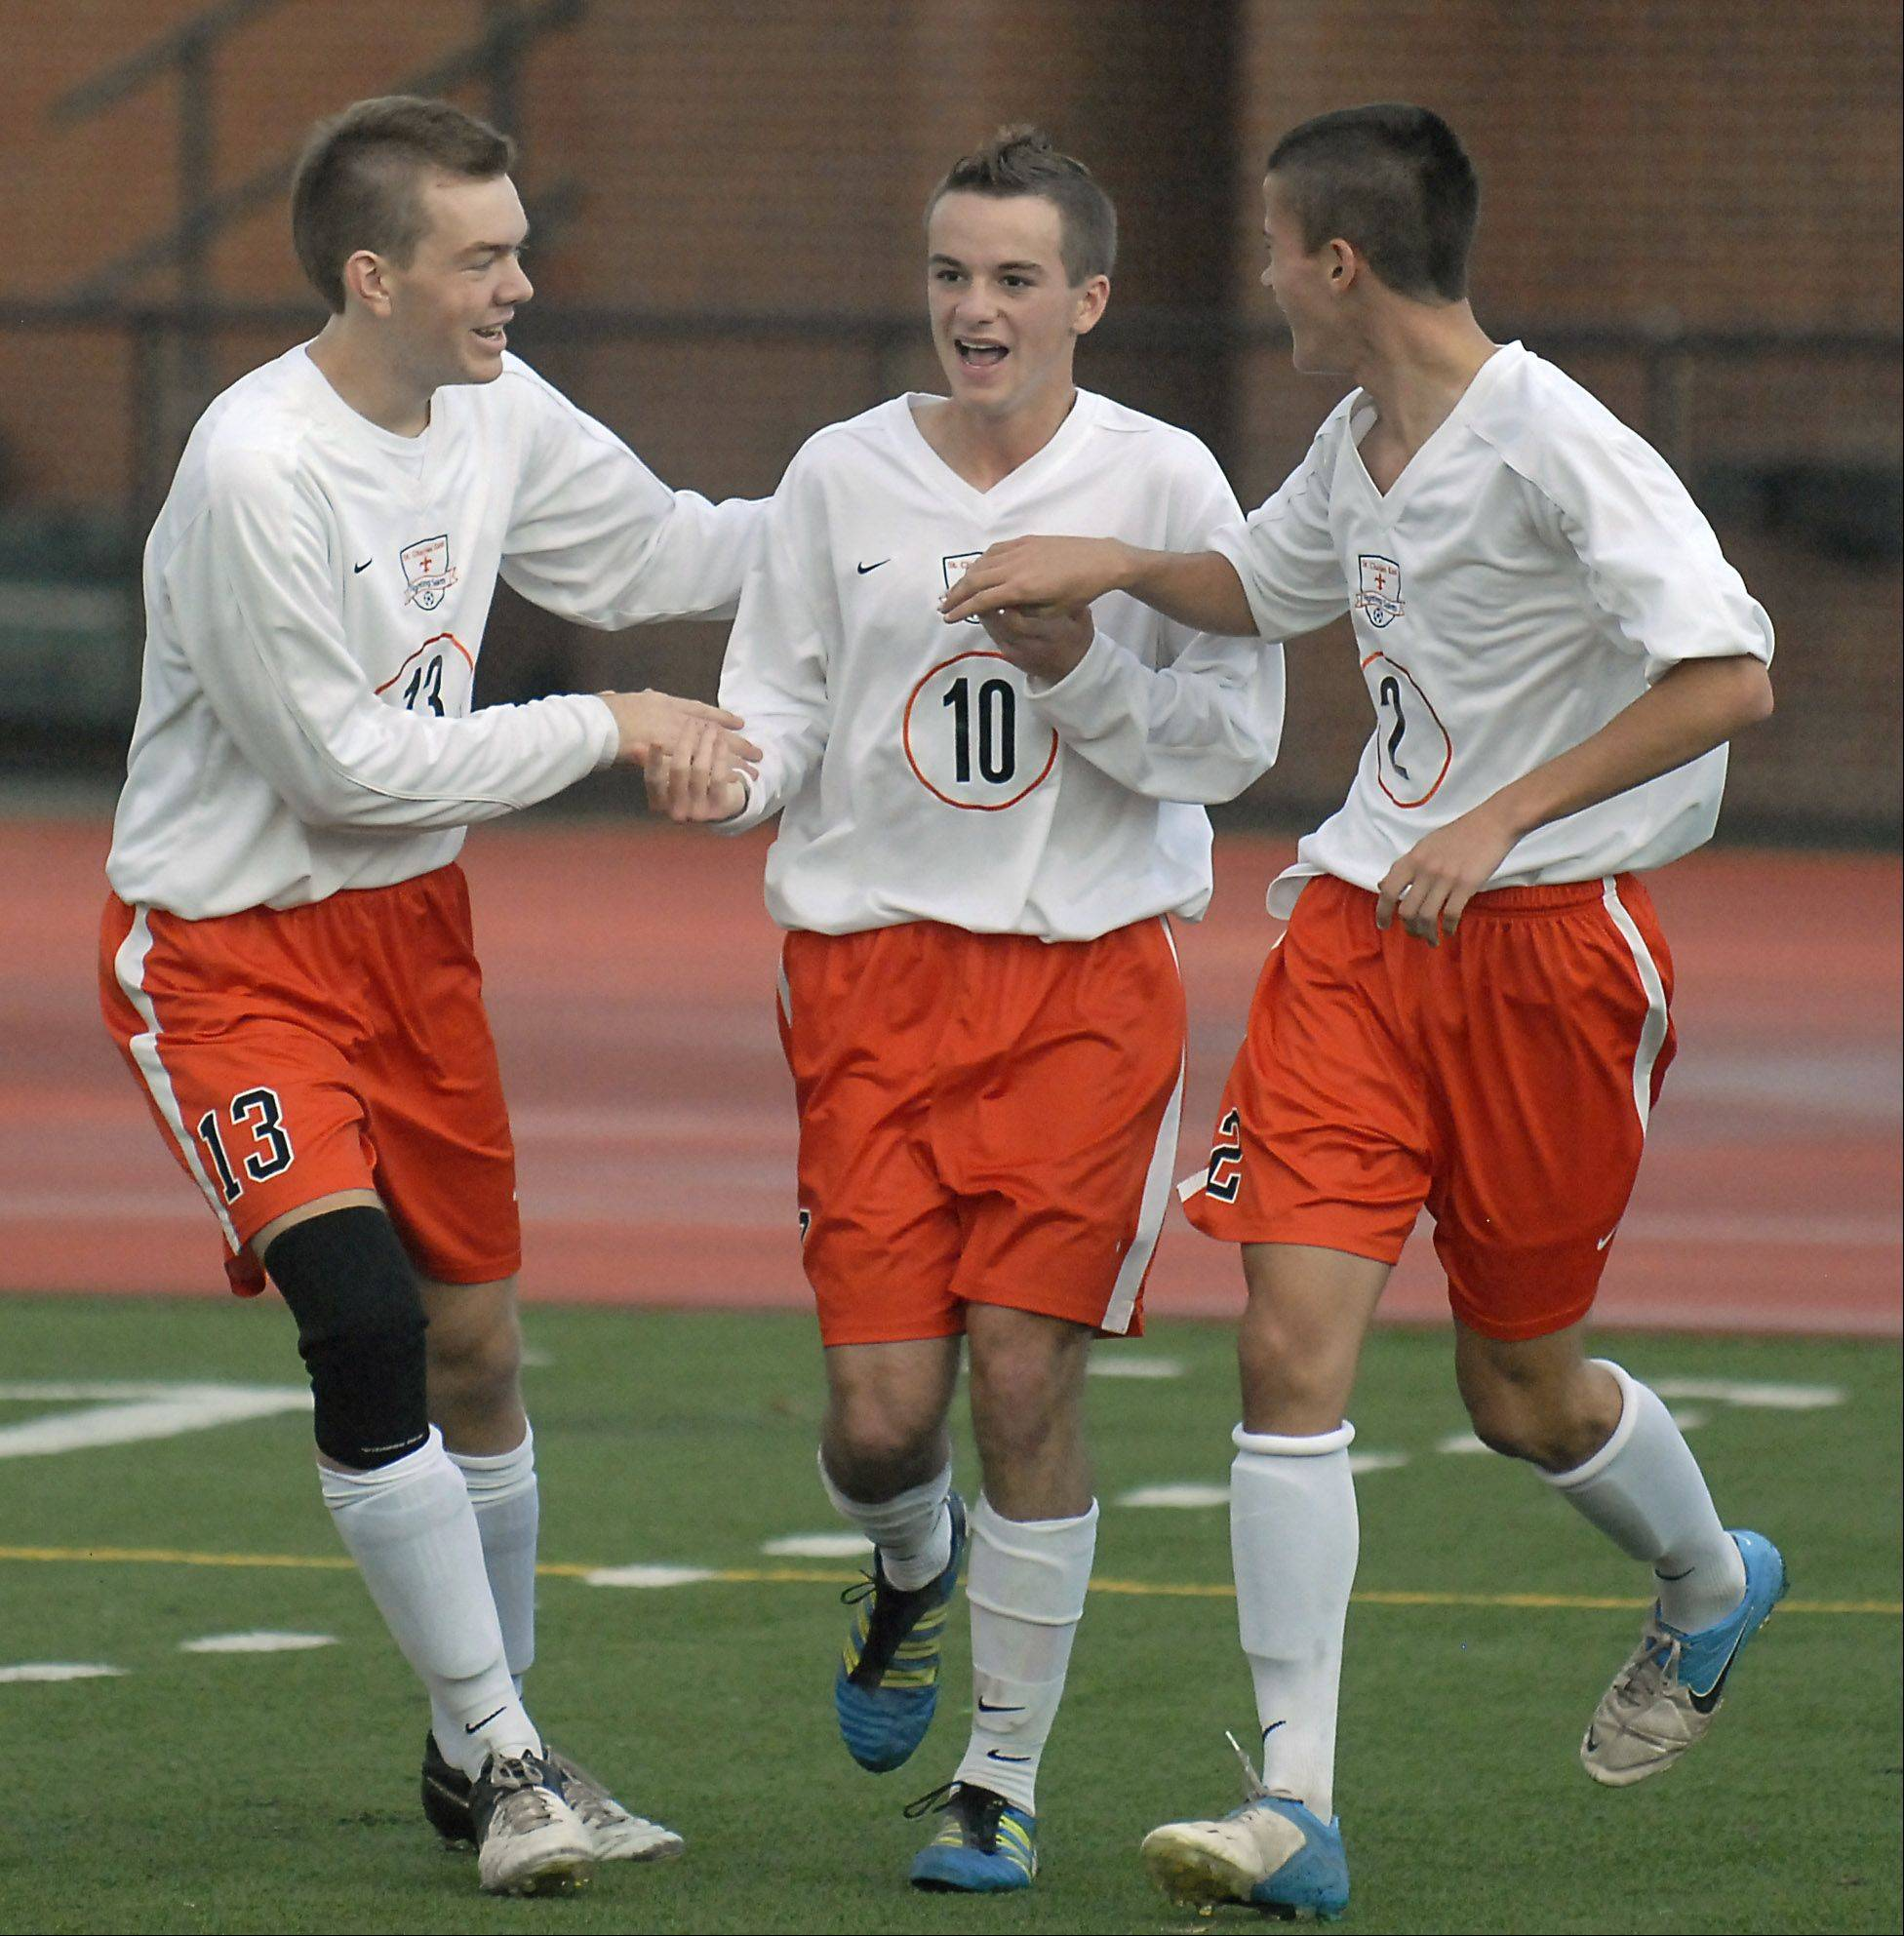 St. Charles East's T.C. Hull (10) gets congrats from teammates Elliot Welter (13) and Cooper Macek in the first half on Tuesday, October 23.